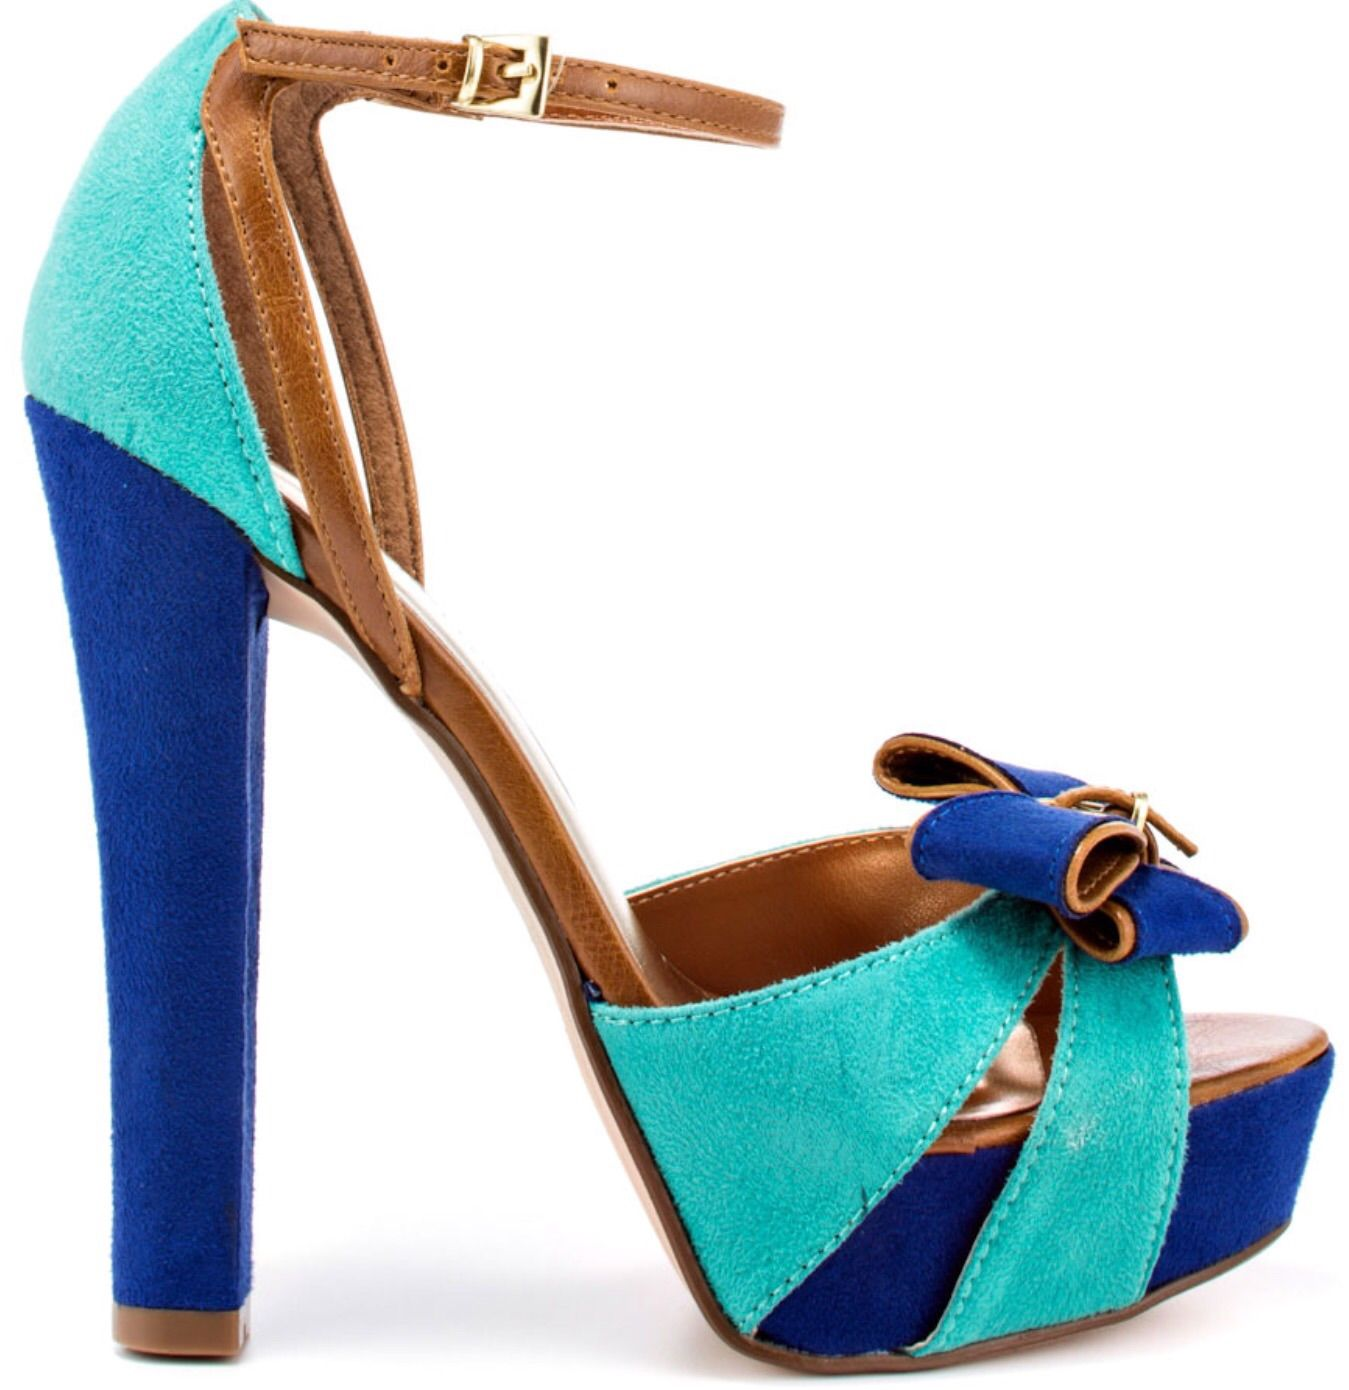 Open Toe High Heel Shoes Pictures, Photos, and Images for Facebook ...